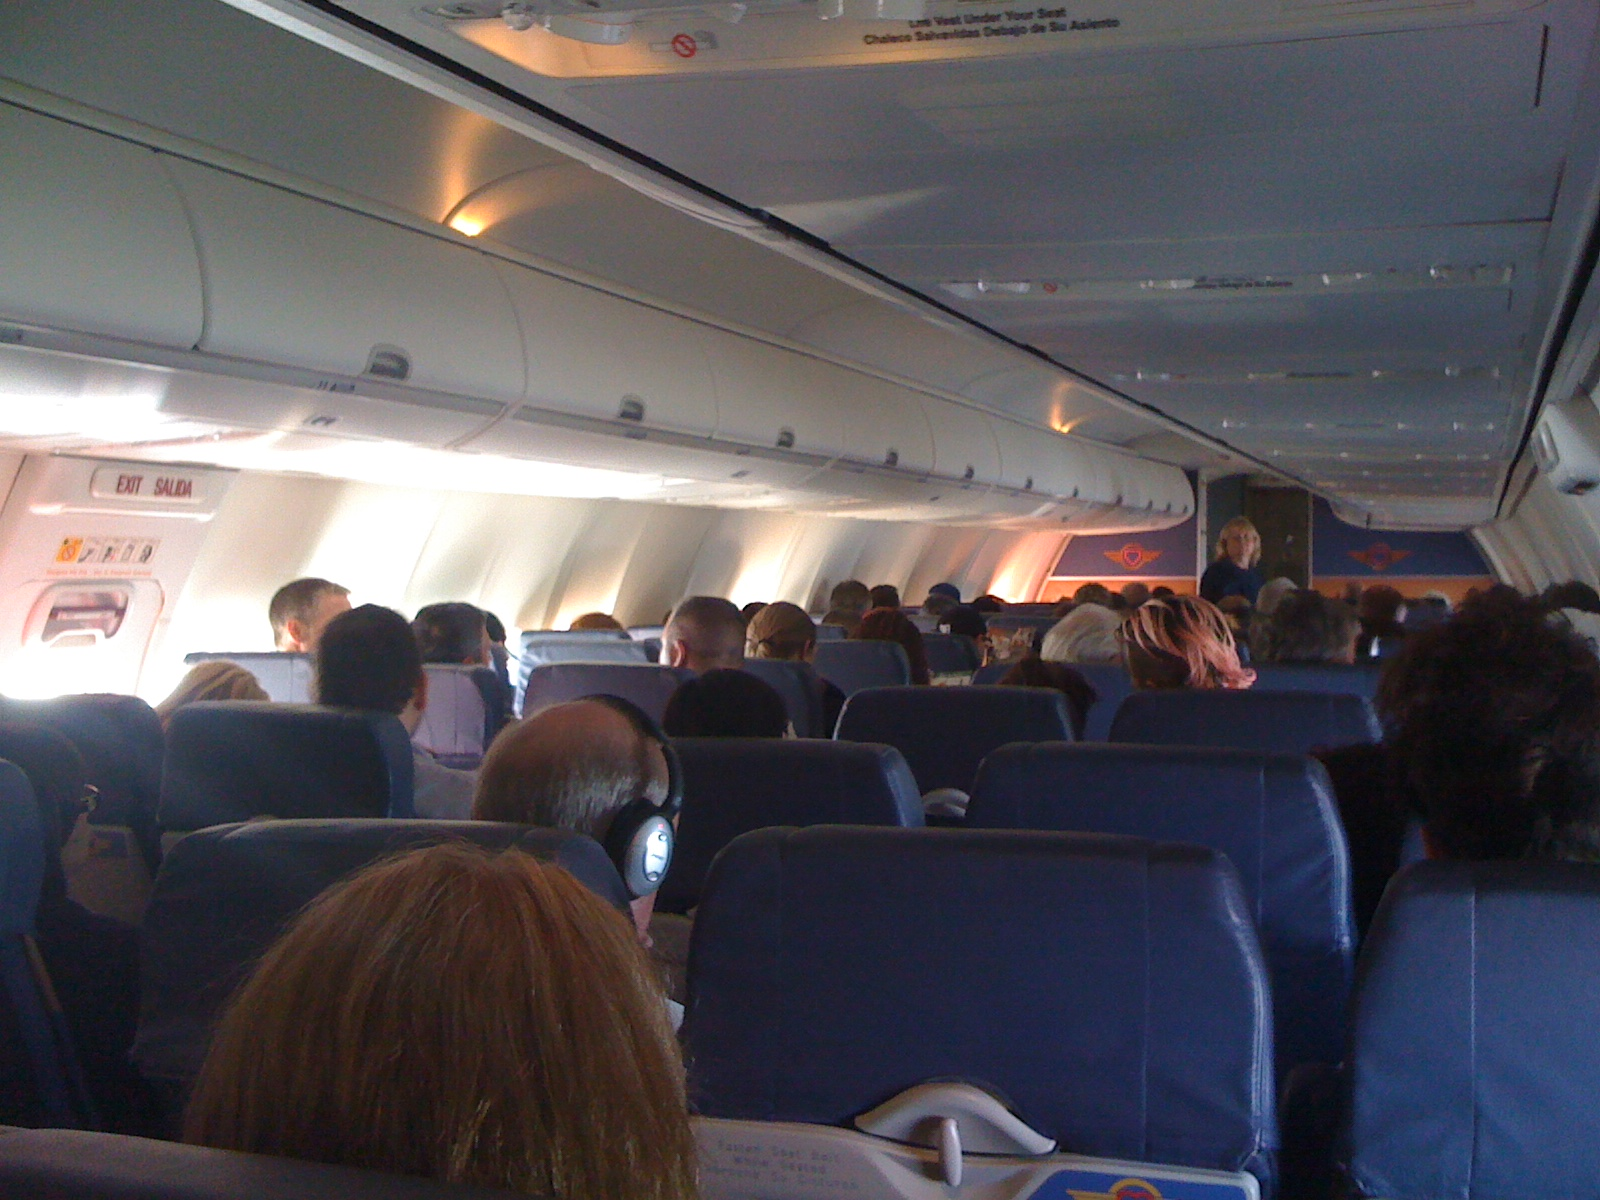 the plane ride from hell